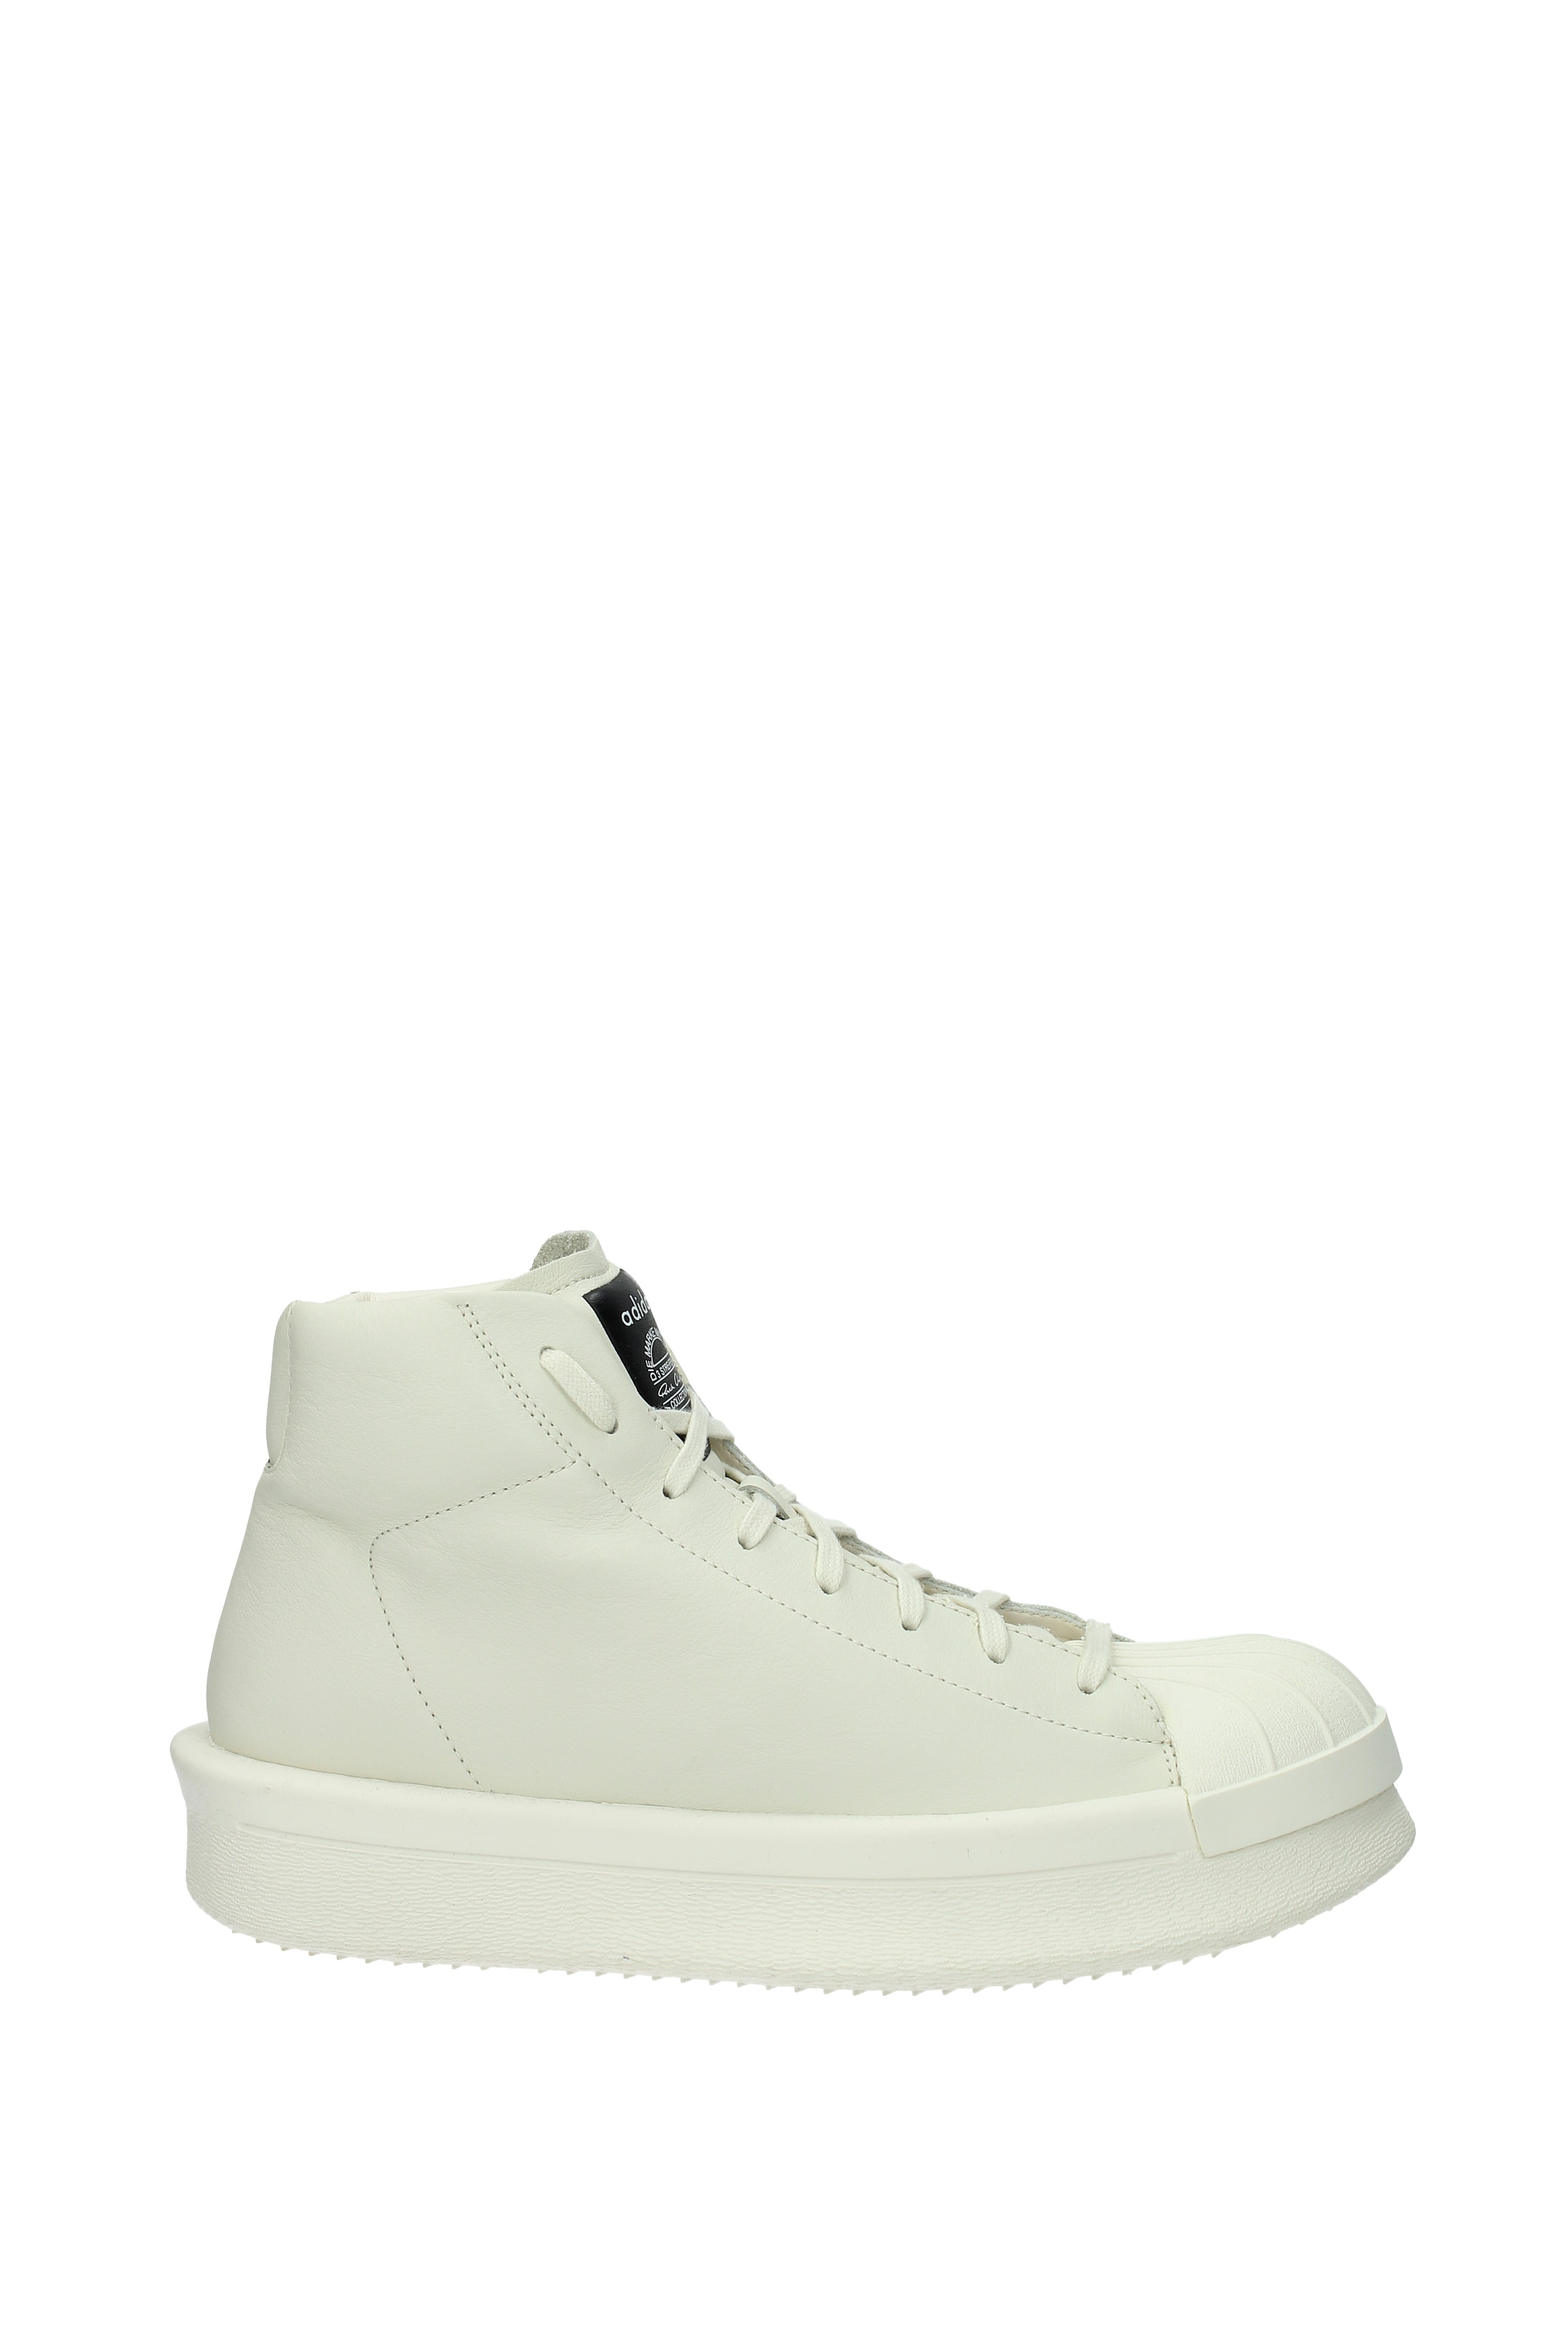 Sneakers Adidas rick owens Men - Leather (CQ1849)